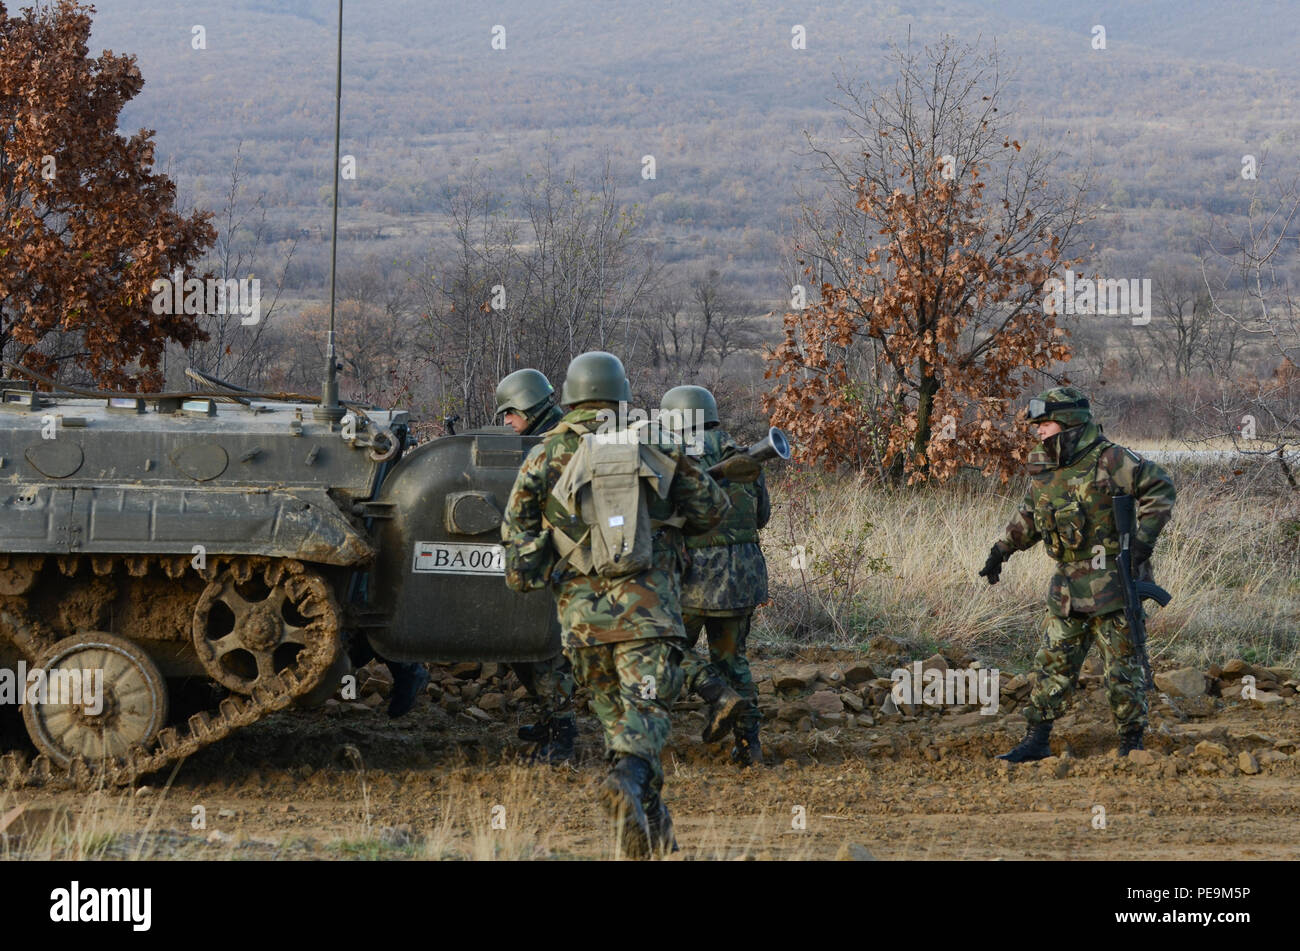 Bulgarian soldiers of 1-61st Mechanized Battalion rush to mount a Boyevaya Mashina Pekhoty 1 (BMP -1) as their team leader directs them during Exercise Peace Sentinel at Novo Selo Training Center, Bulgaria, Nov. 24, 2015. (U.S. Army photo by Staff Sgt. Steven M. Colvin/Released) - Stock Image